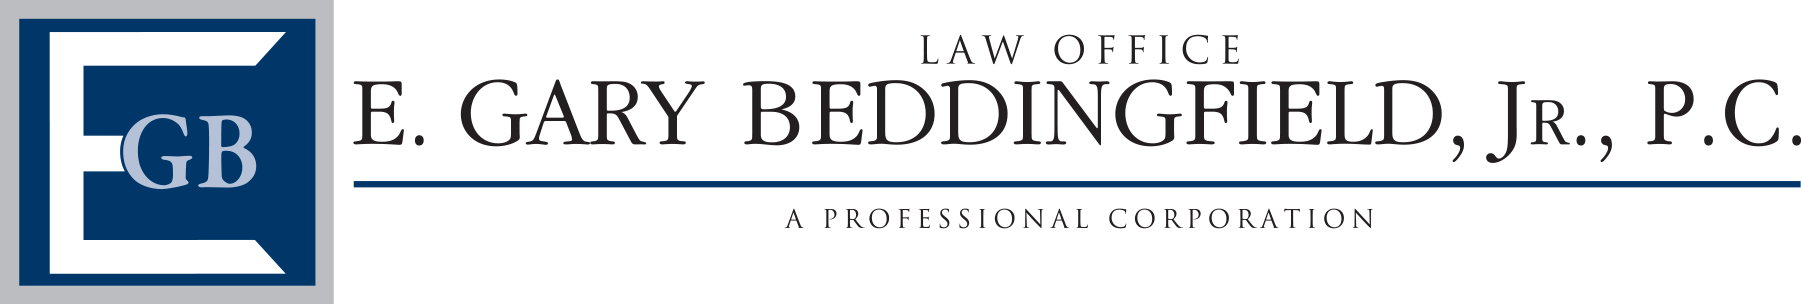 Gary Beddingfield Law